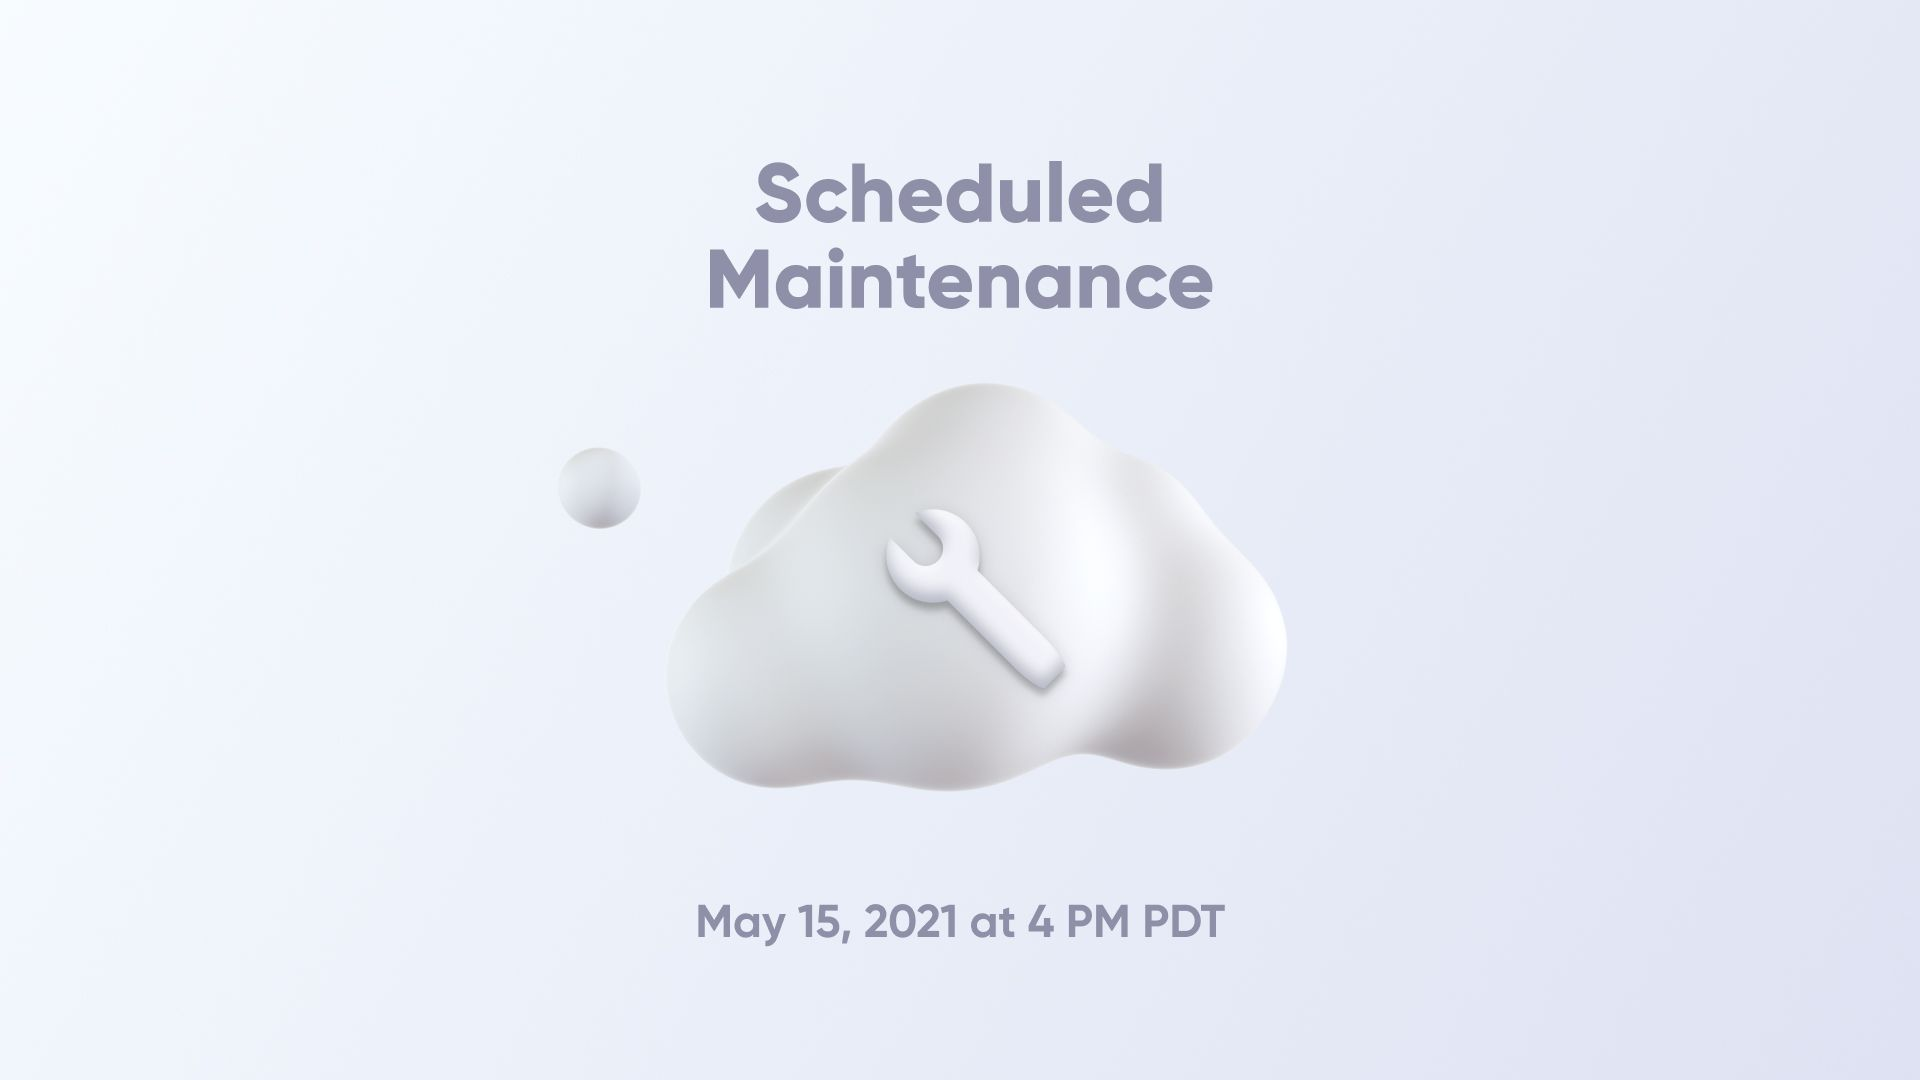 ProtoPie scheduled maintenance on May 15, 2021 thumbnail